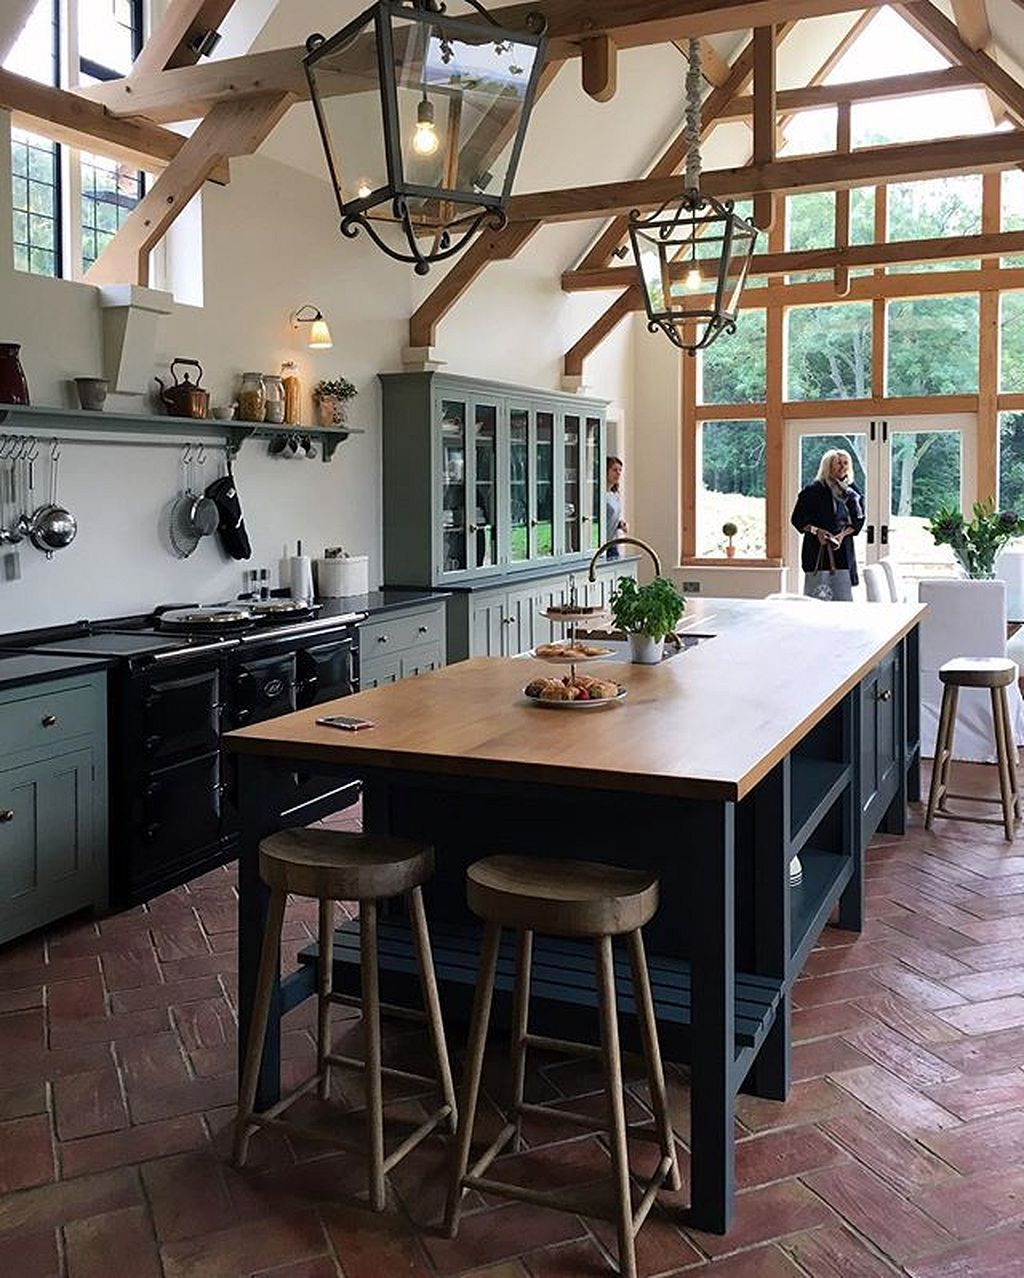 Black And White Kitchen Decor Best Interiors Lodge Old Country Rustic Walls The Boston